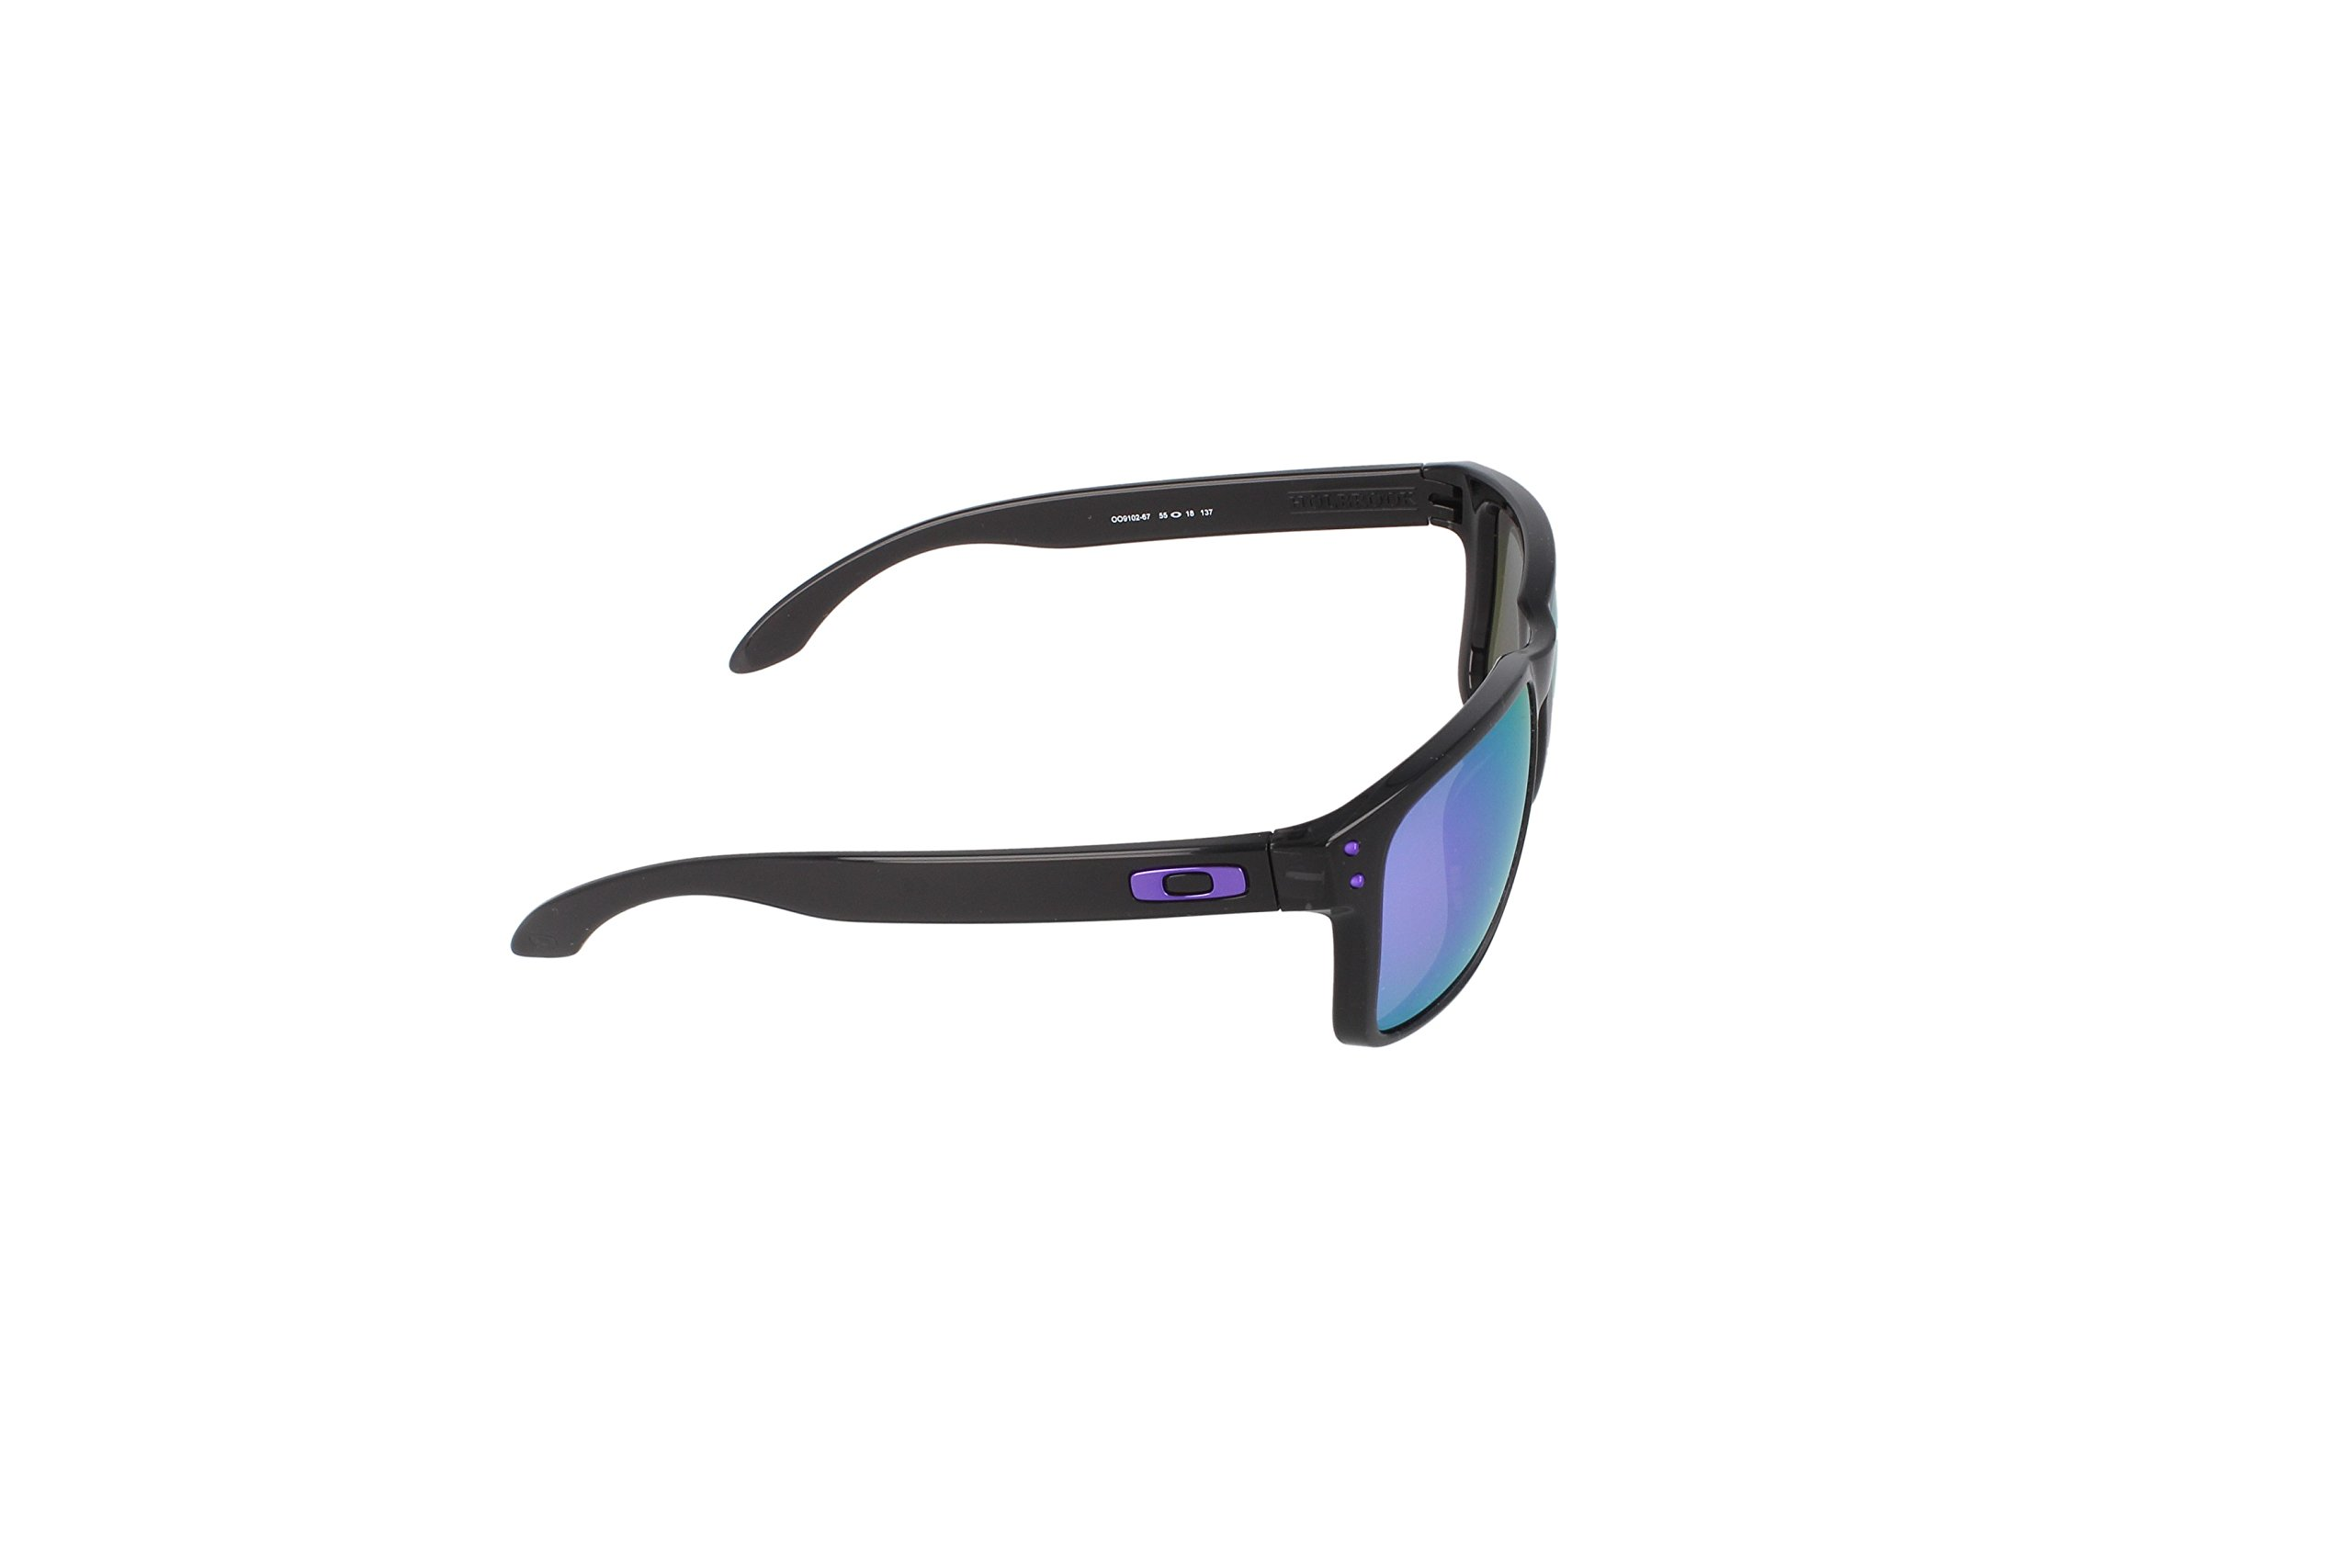 Oakley Holbrook Sunglasses,  Black, One Size by Oakley (Image #3)